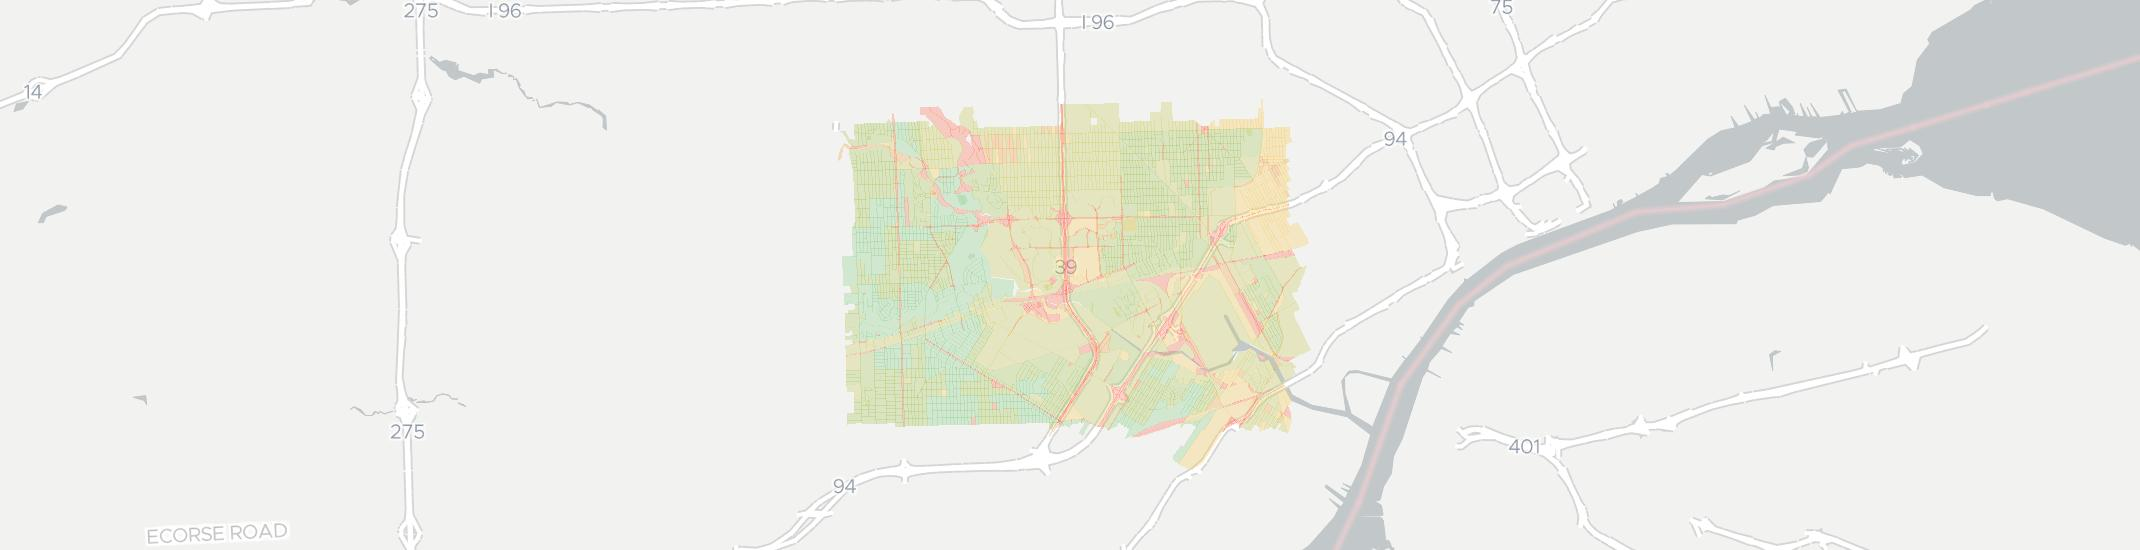 Dearborn Internet Competition Map. Click for interactive map.